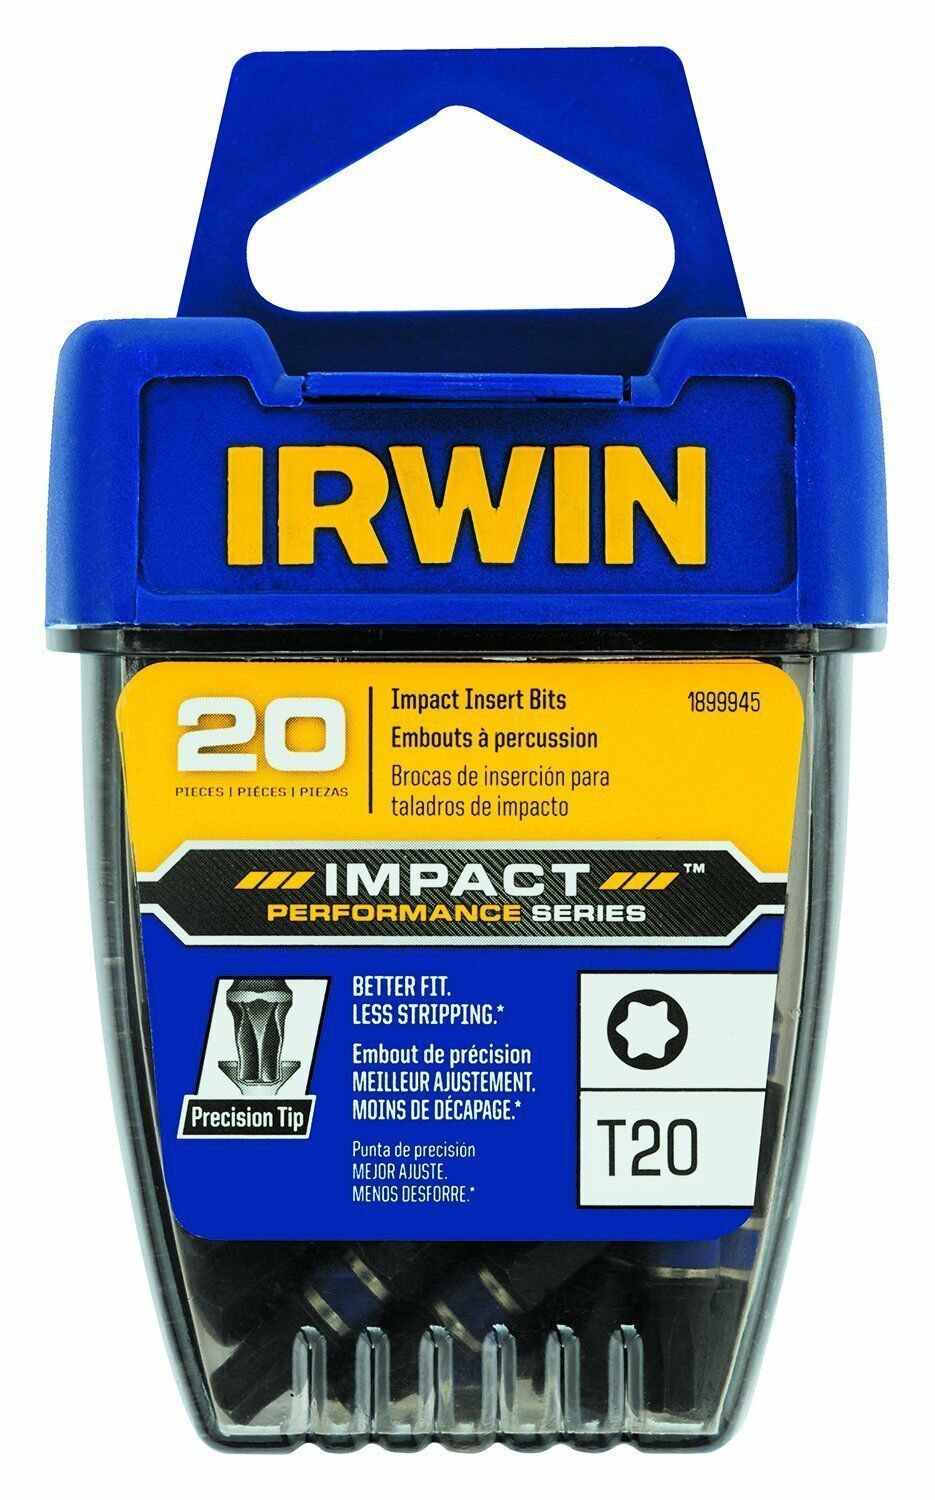 Primary image for Irwin 1899945 Impact Performance T20 Impact Screwdriver Insert Bits 20 Pack